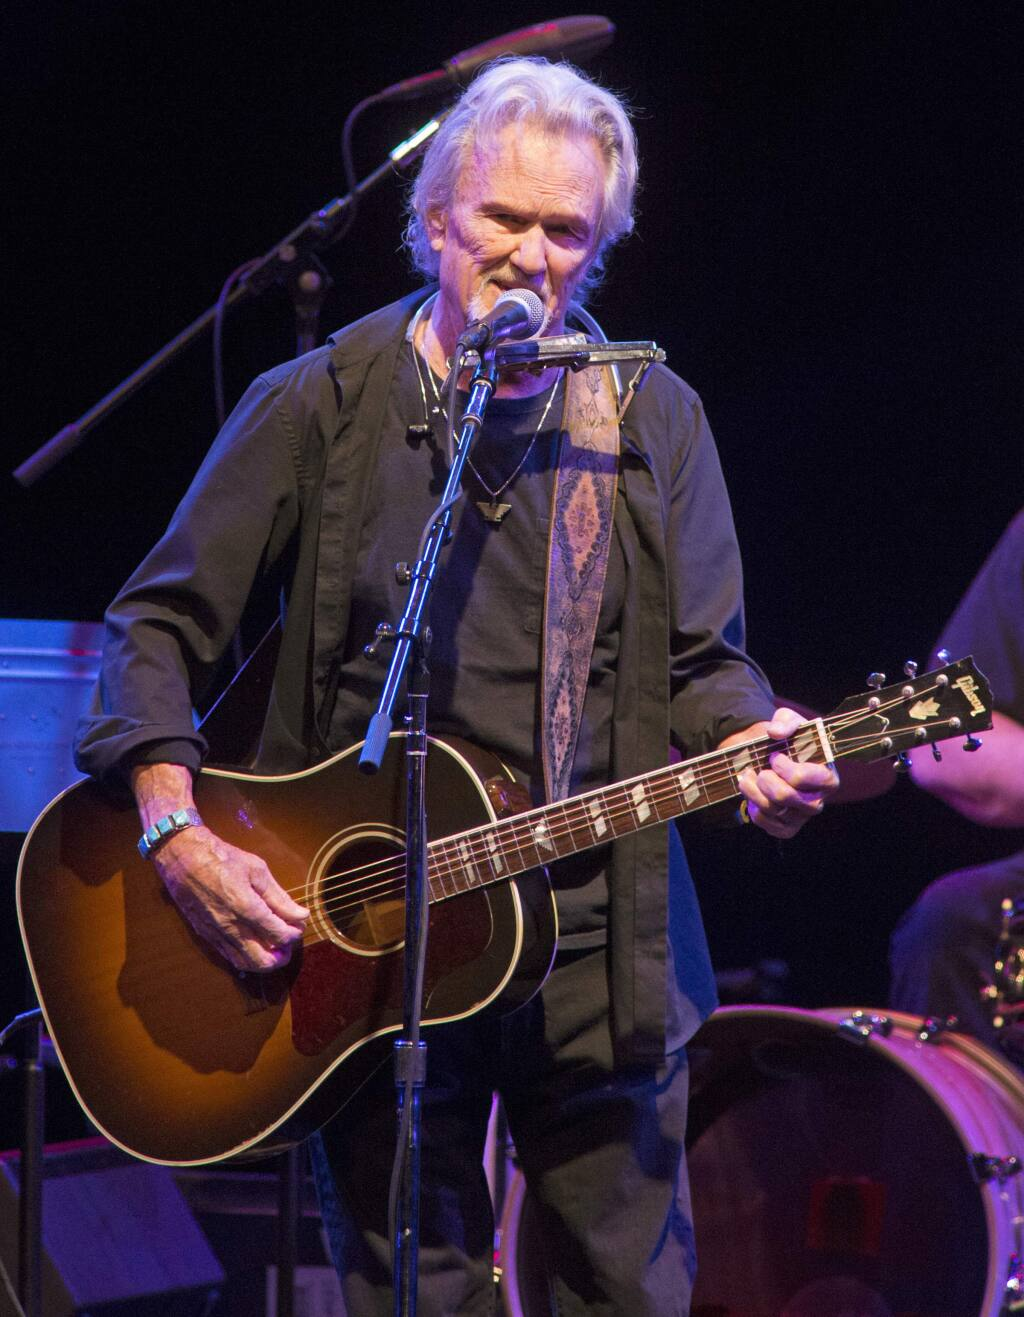 Kris Kristofferson performs in concert at The American Music Theatre on Friday, April 12, 2019, in Lancaster, Pa. (Photo by Owen Sweeney/Invision/AP)